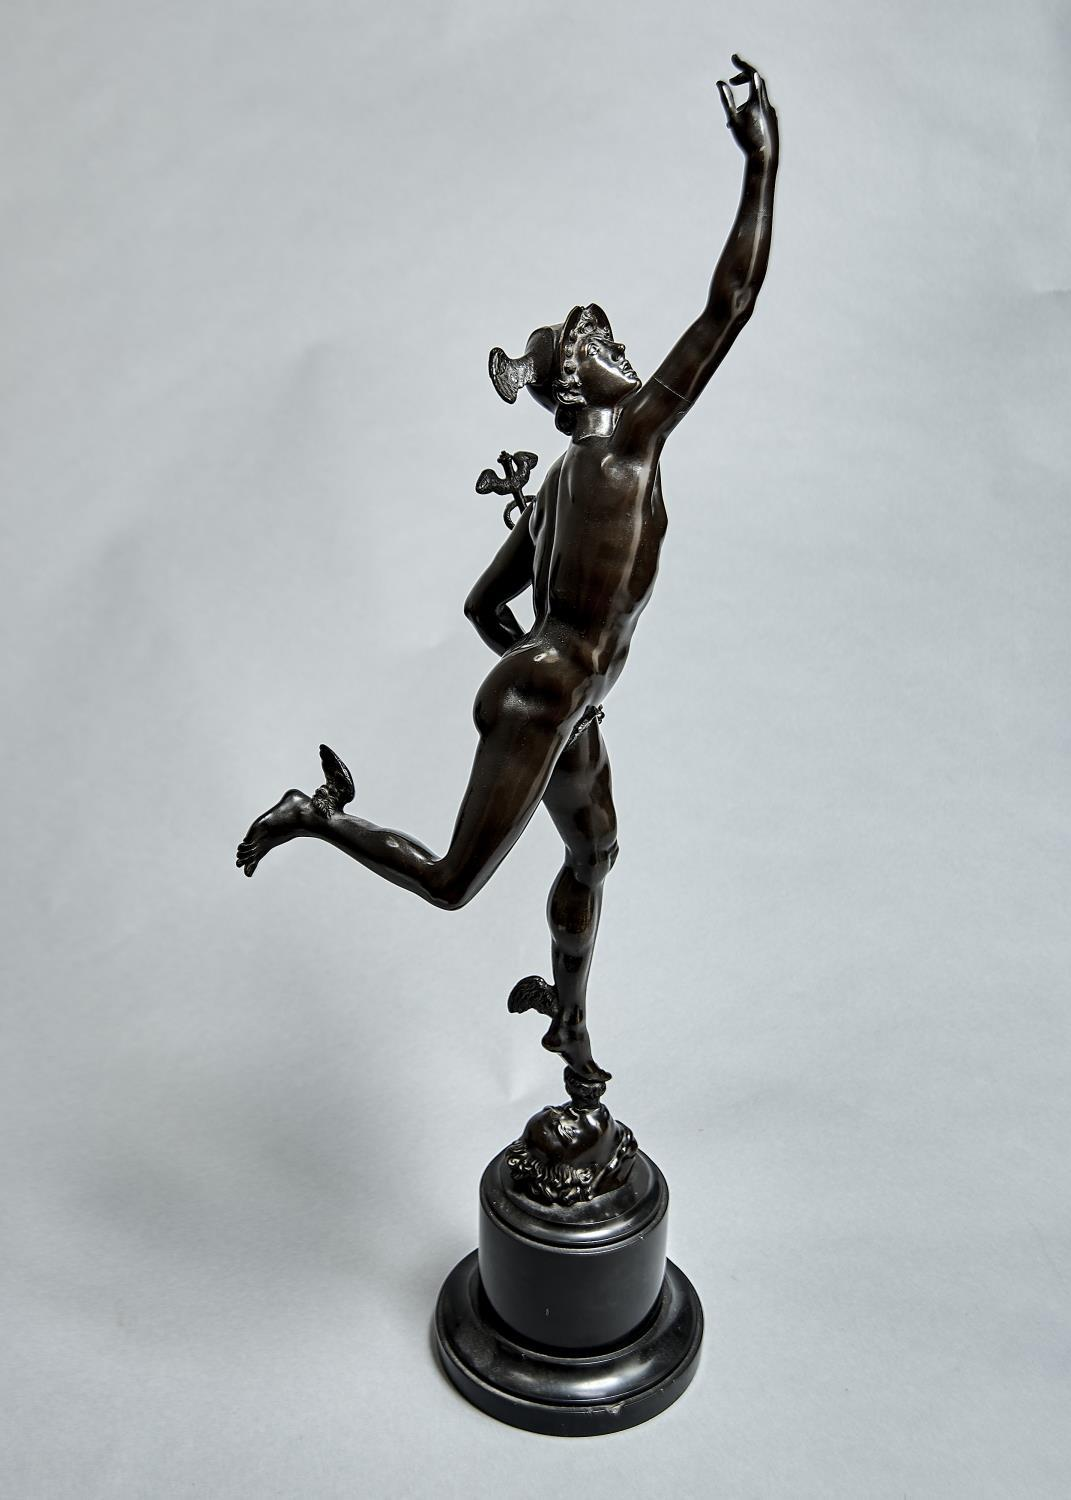 A FRENCH BRONZE STATUETTE OF MERCURY AFTER GIAMBOLOGNA, LATE 19TH C, ON NERO BELGICA MARBLE SOCLE, - Image 2 of 2